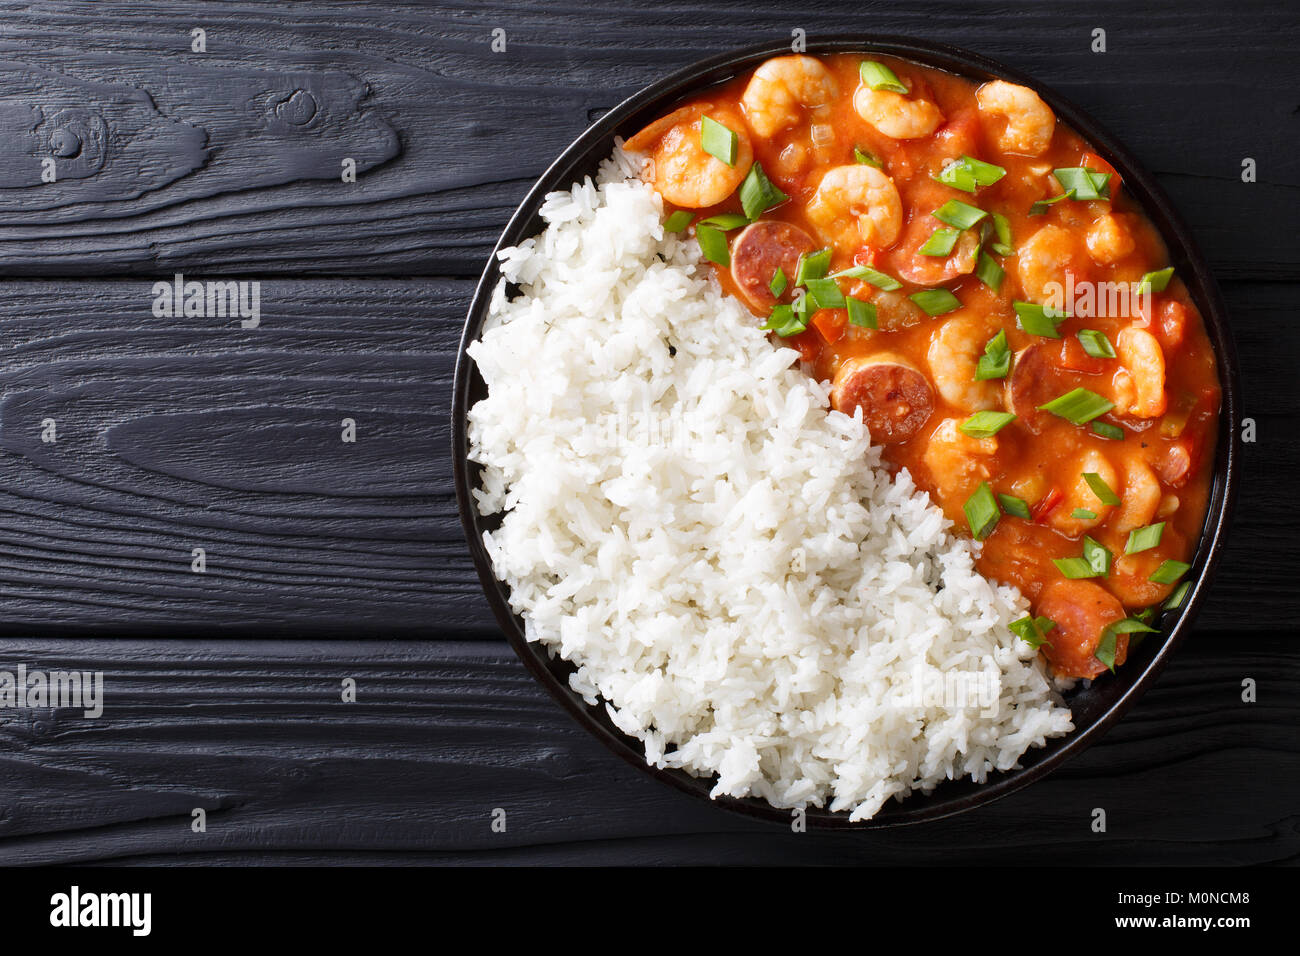 Delicious gumbo with prawns, sausage and rice on a plate on the table. horizontal top view from above - Stock Image